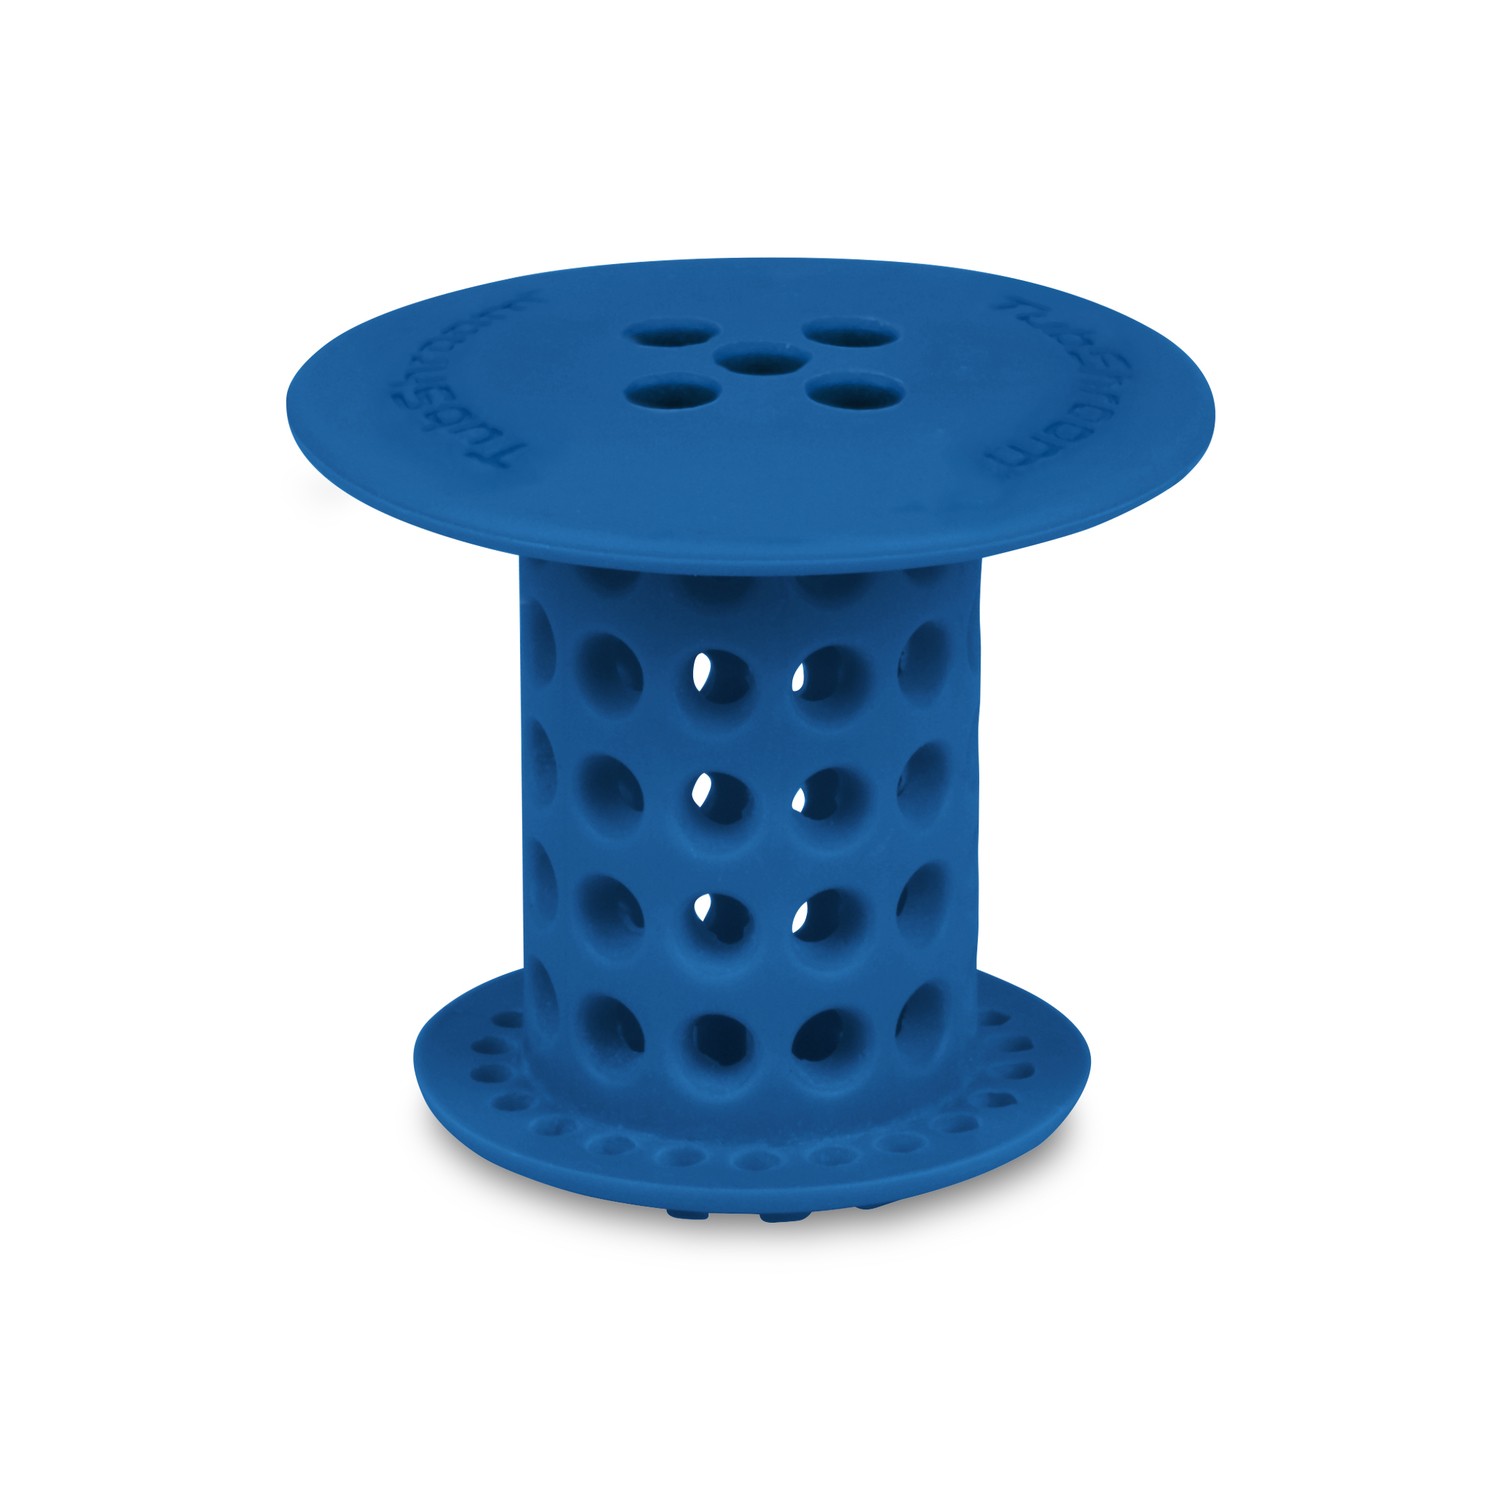 Tub Shroom  1-1/2 in. Blue  Silicone  Round  Drain Hair Catcher